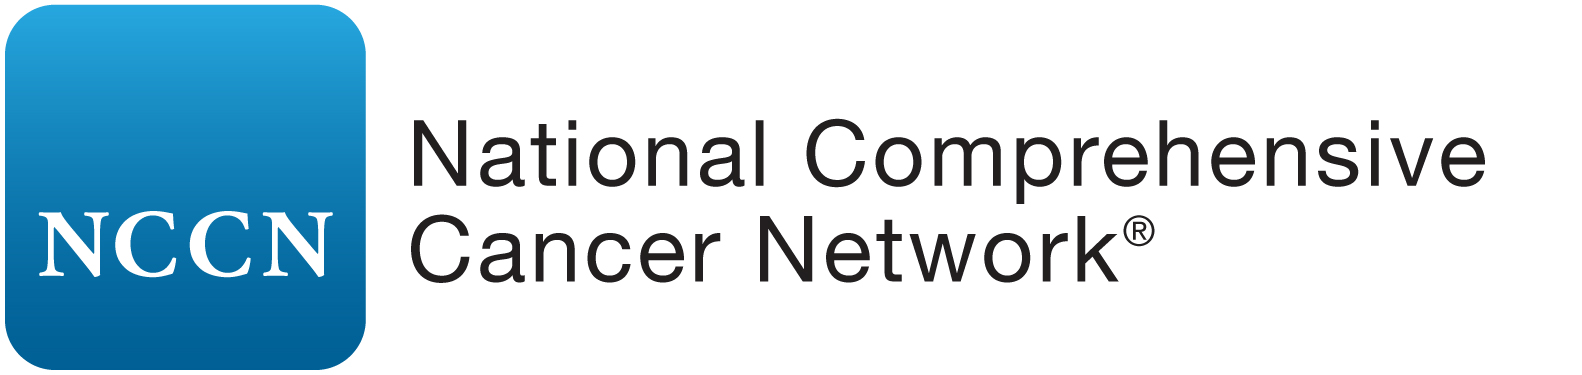 - The National Comprehensive Cancer network offers management guidelines with high risk assessments for different cancers.